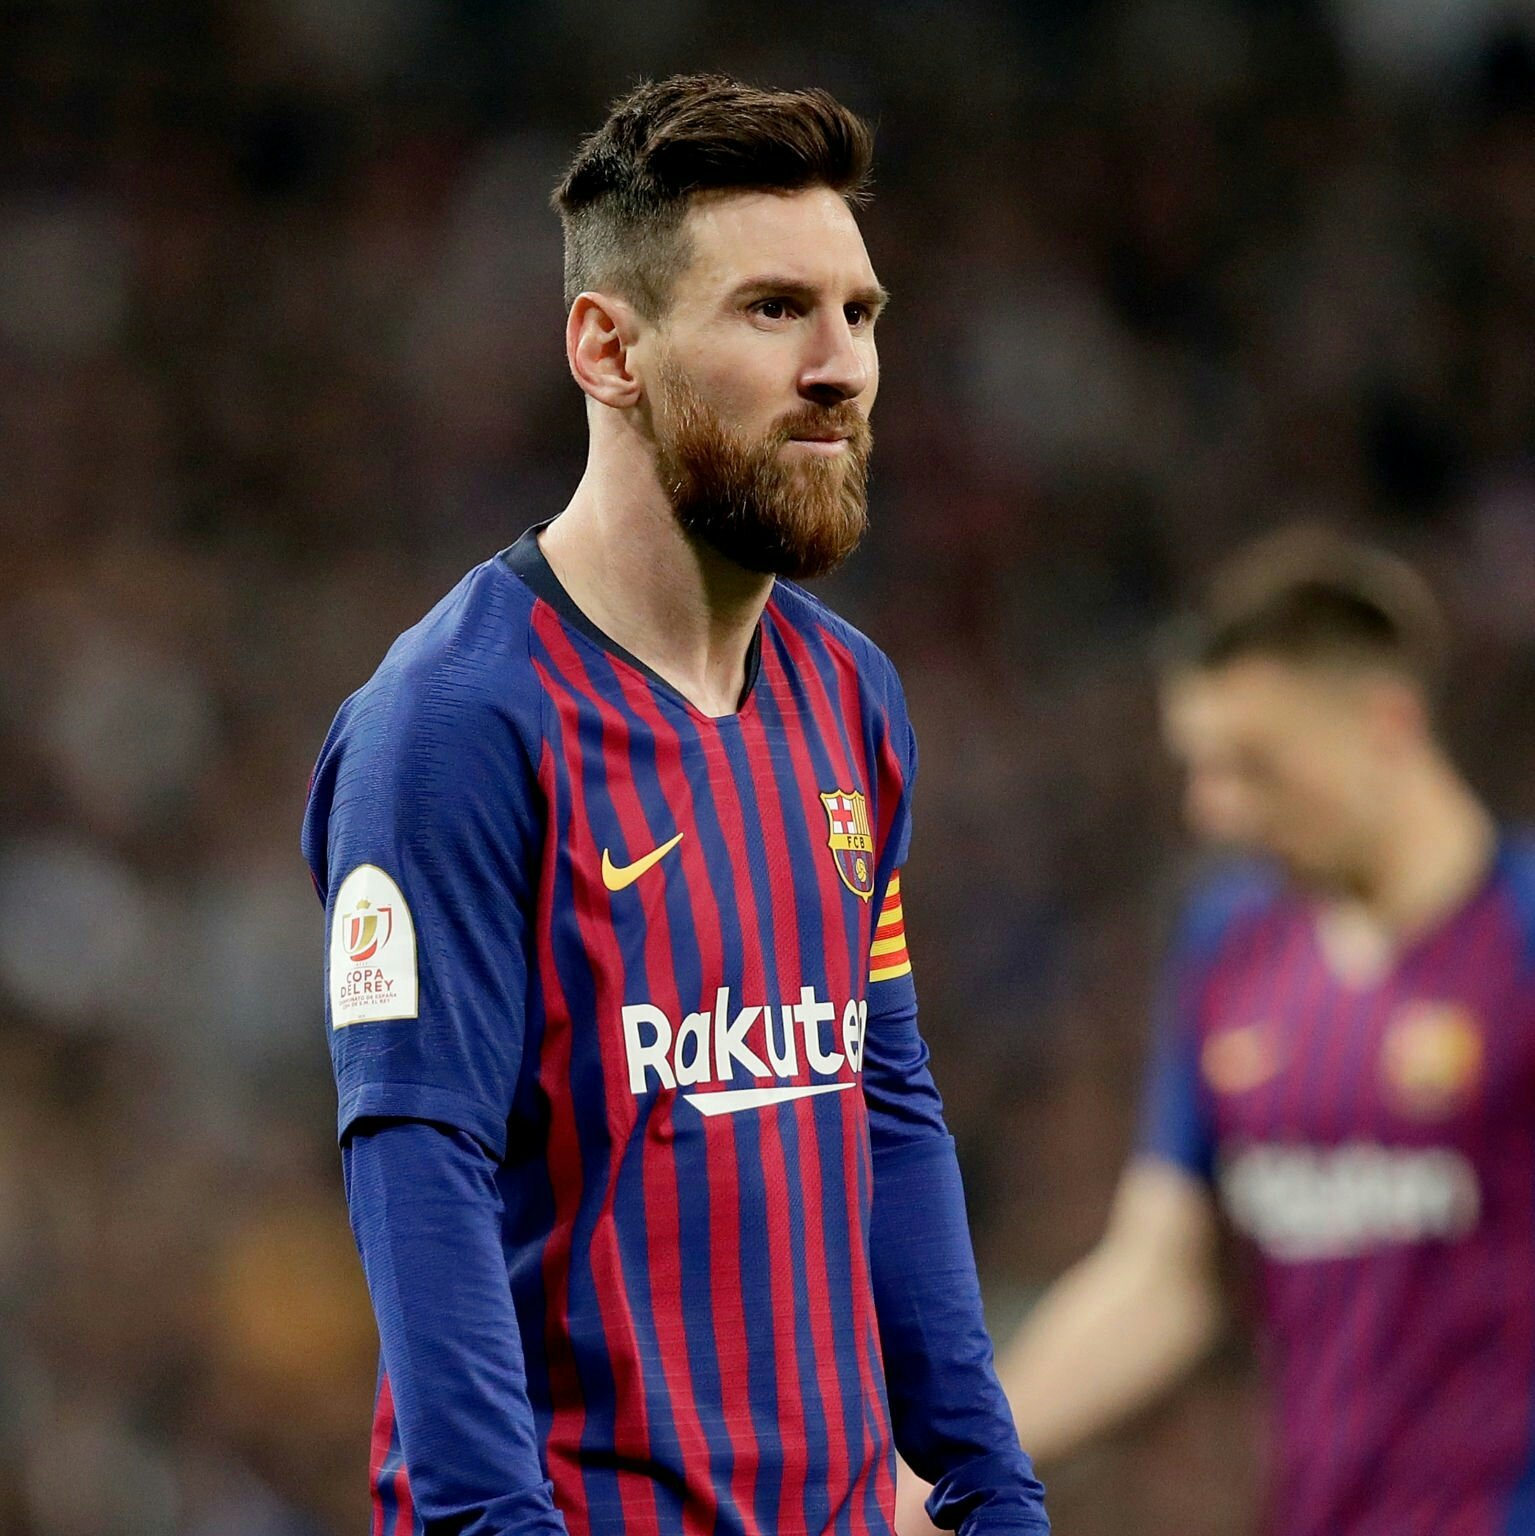 Messi To Miss Barcelona LaLiga Opener Vs Bilbao Due To Injury